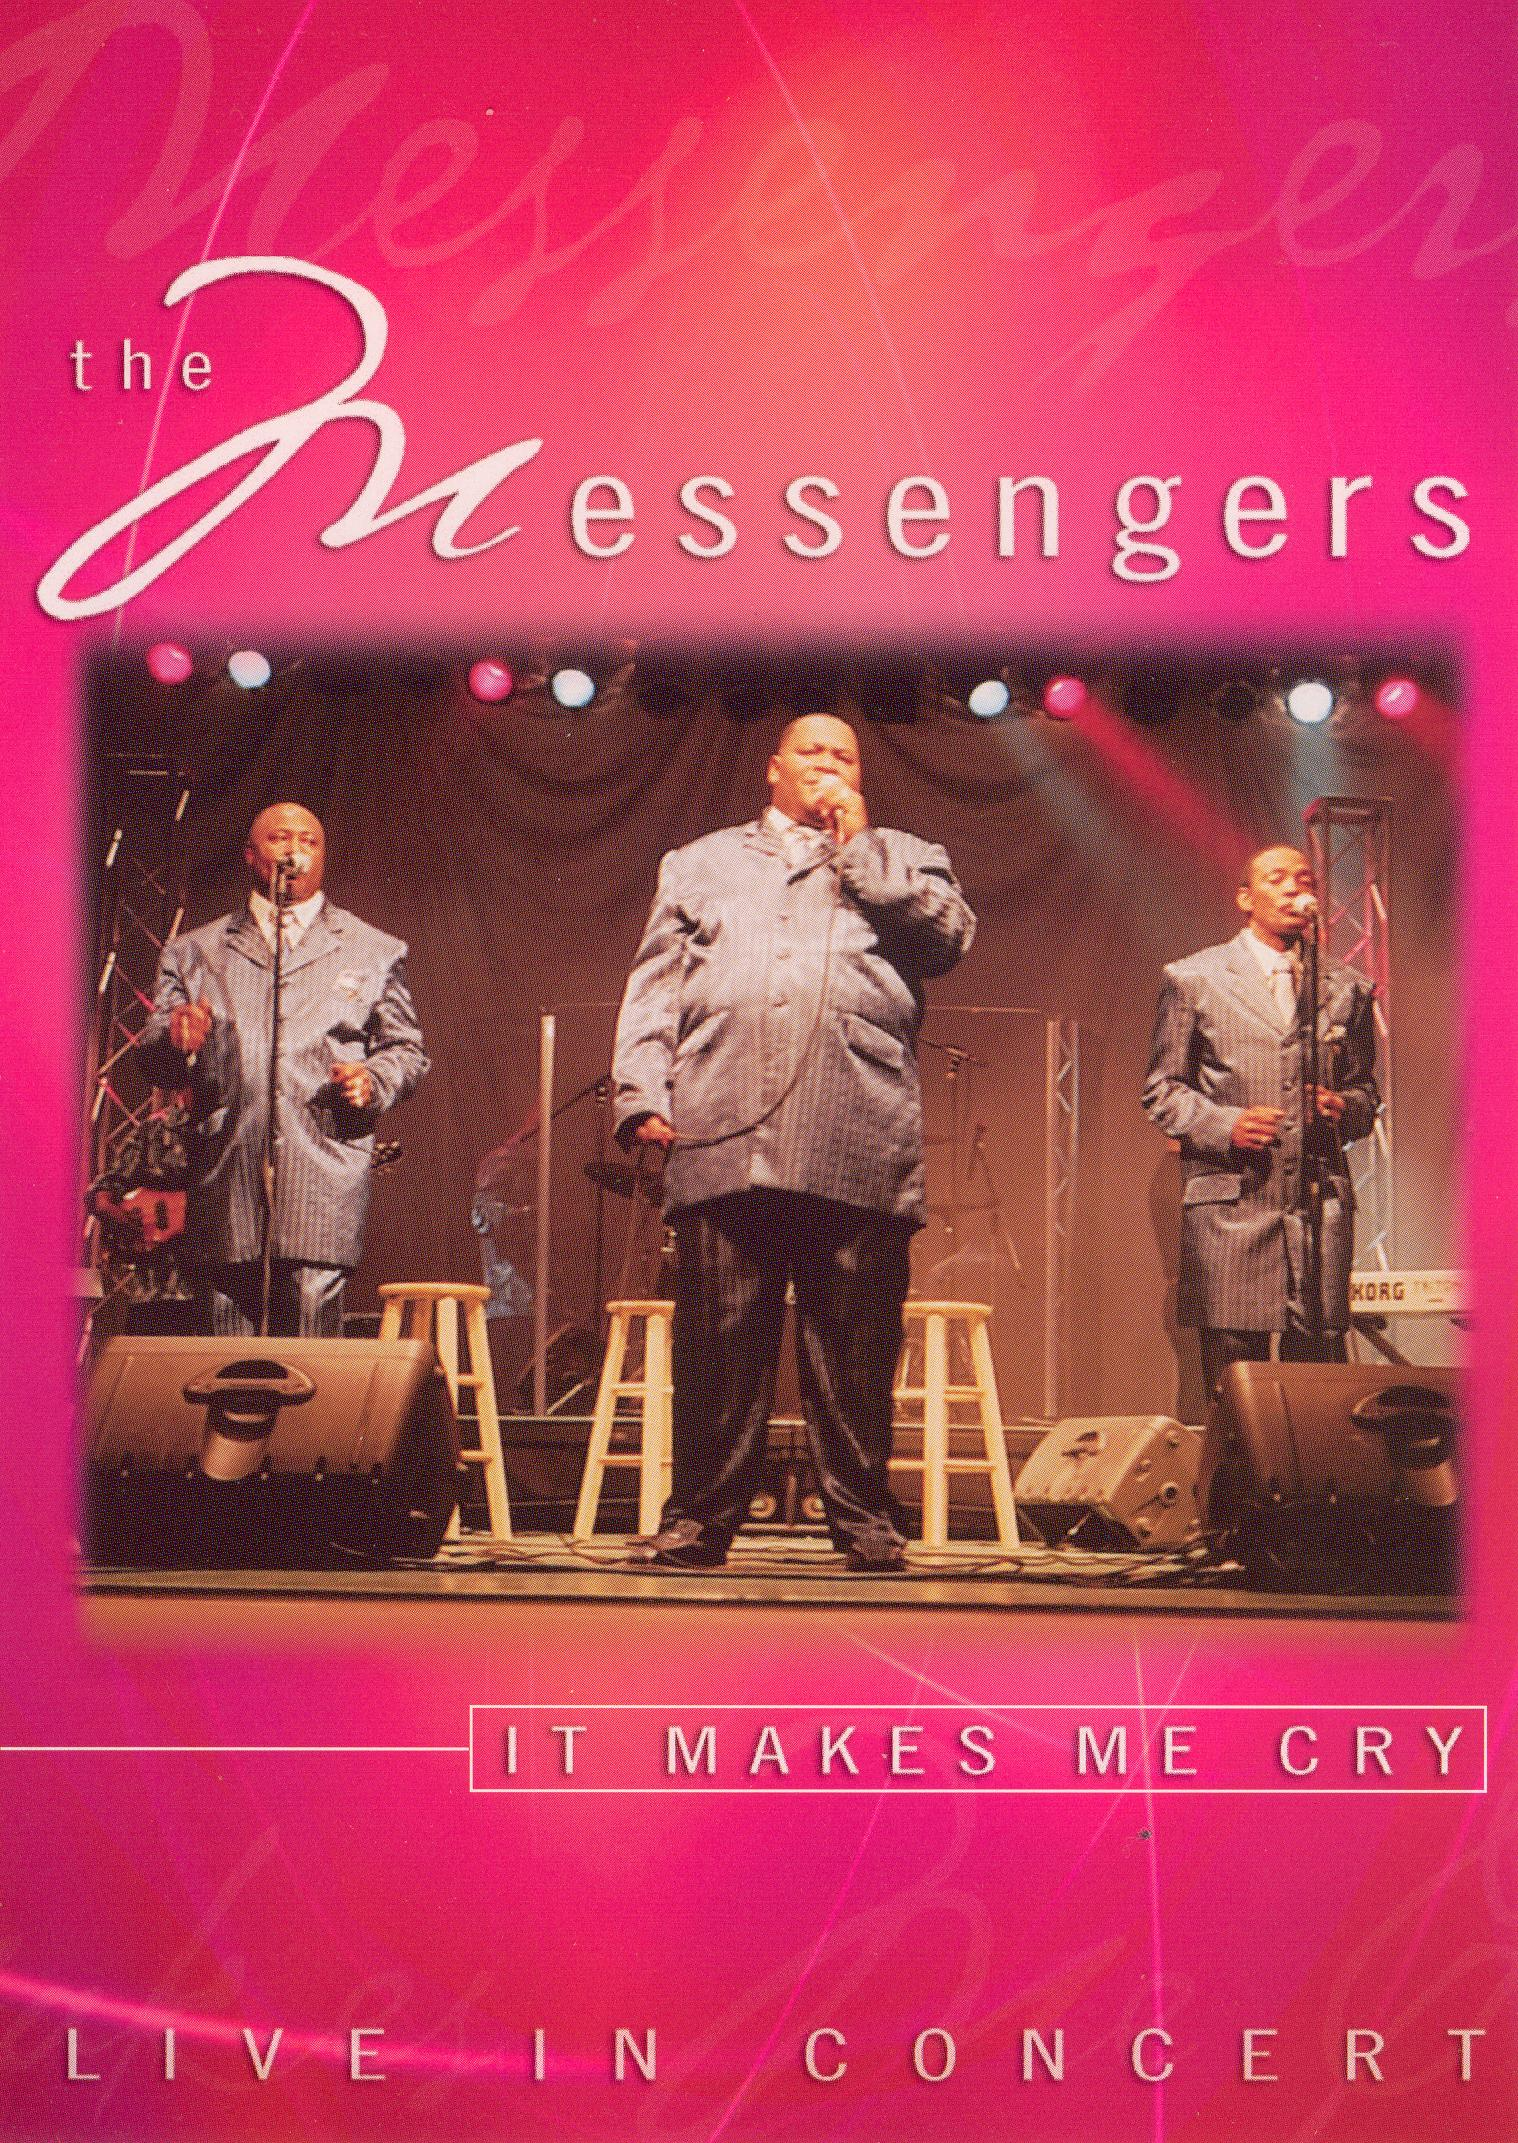 The Messengers: It Makes Me Cry